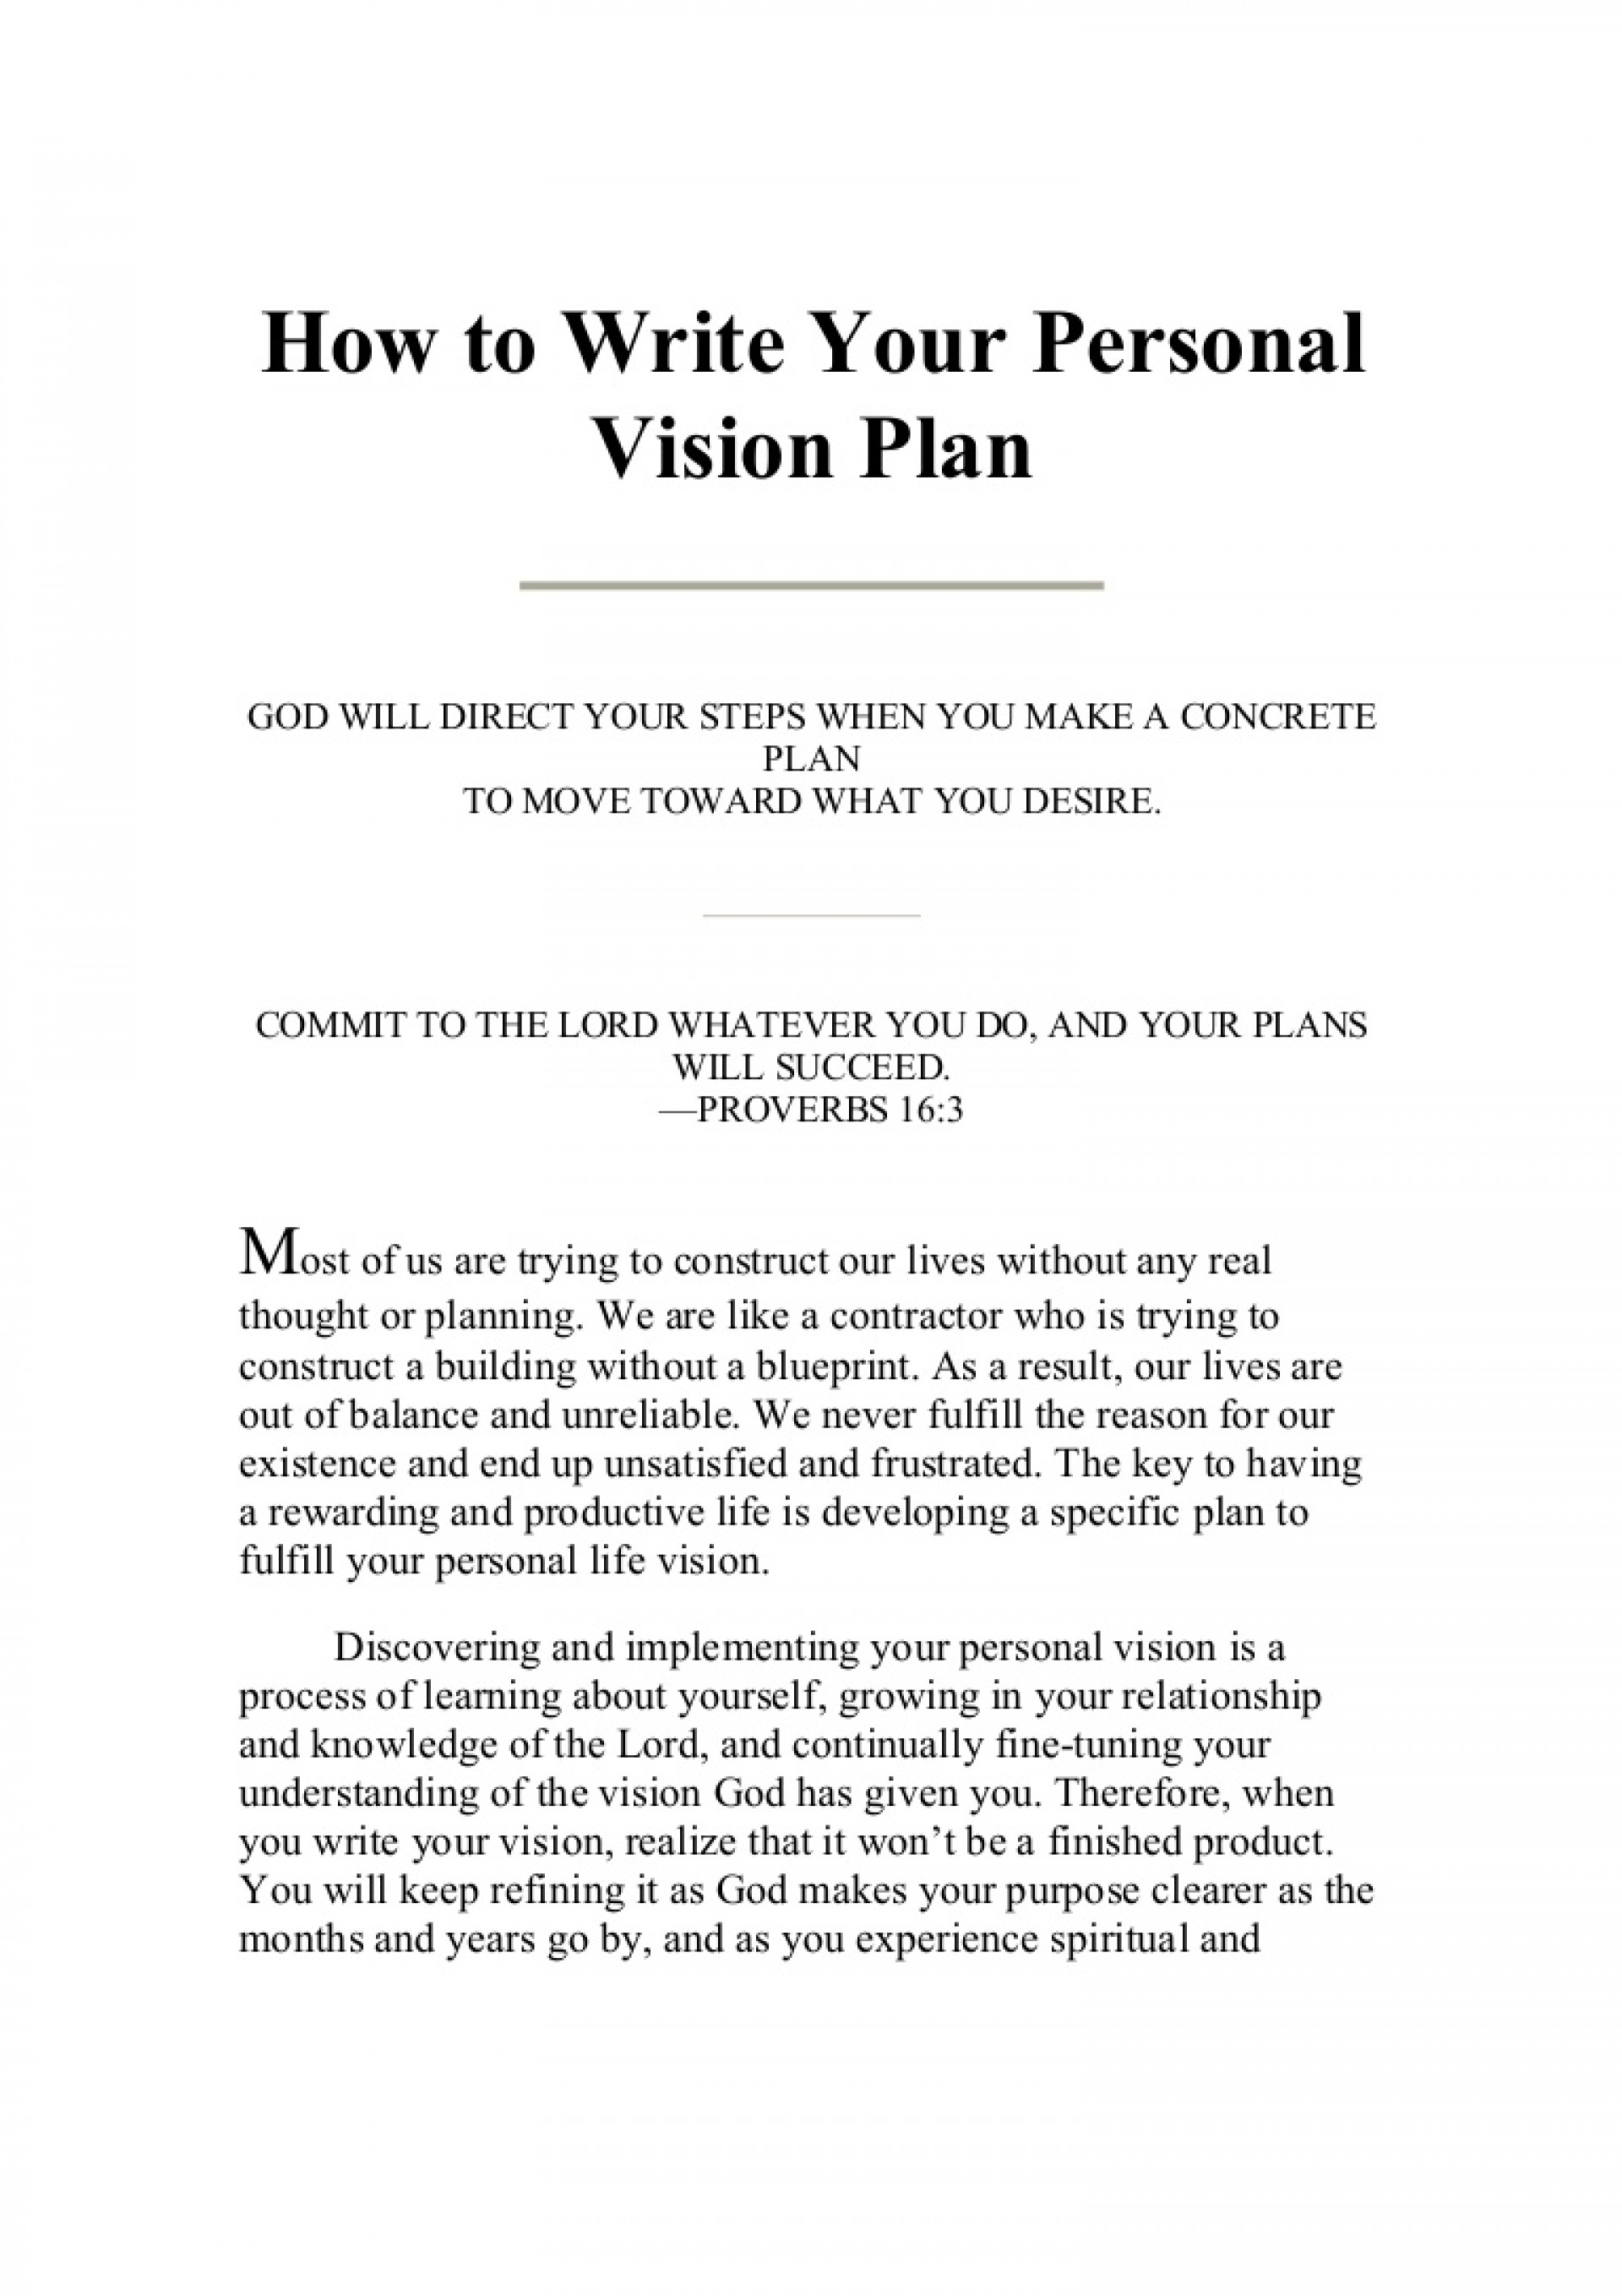 011 Where Do You See Yourself In Years Essay Example Howtowriteyourpersonalvisionplan Phpapp01 Thumbnail Sensational 10 Best Answer Medical School 1920